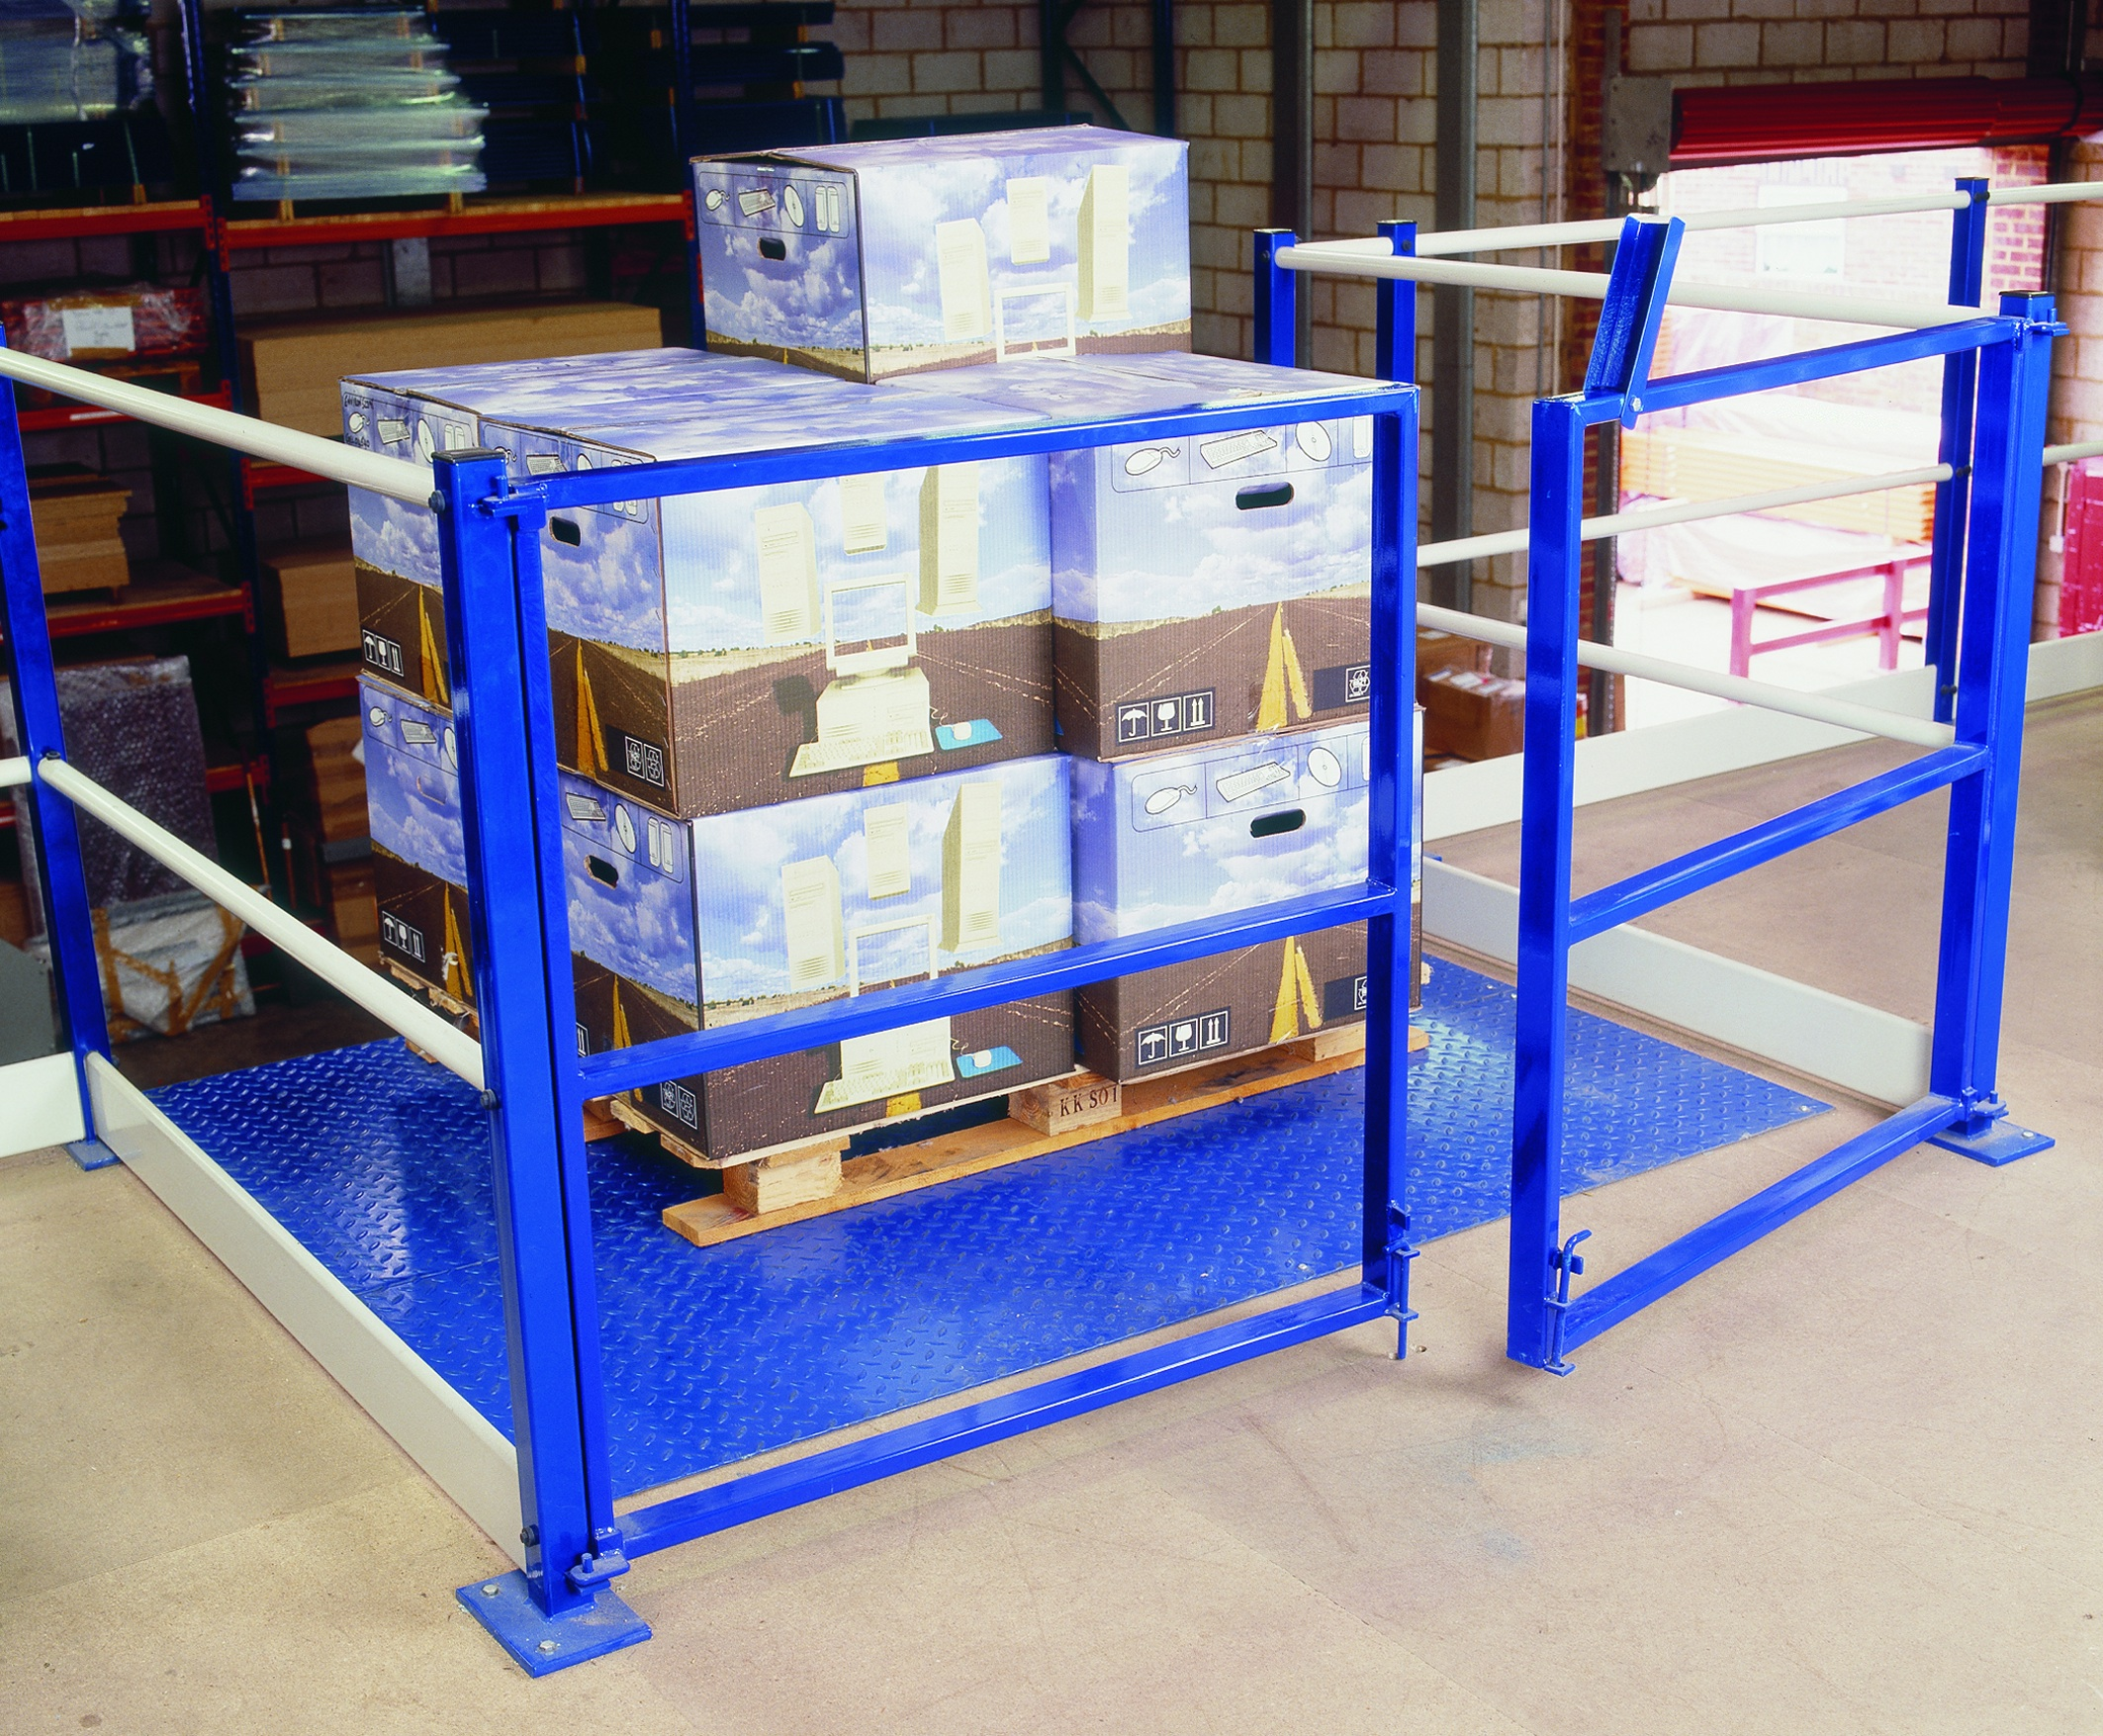 Mezzanine Pallet Gate : Storage mezzanine pallet gate selection office